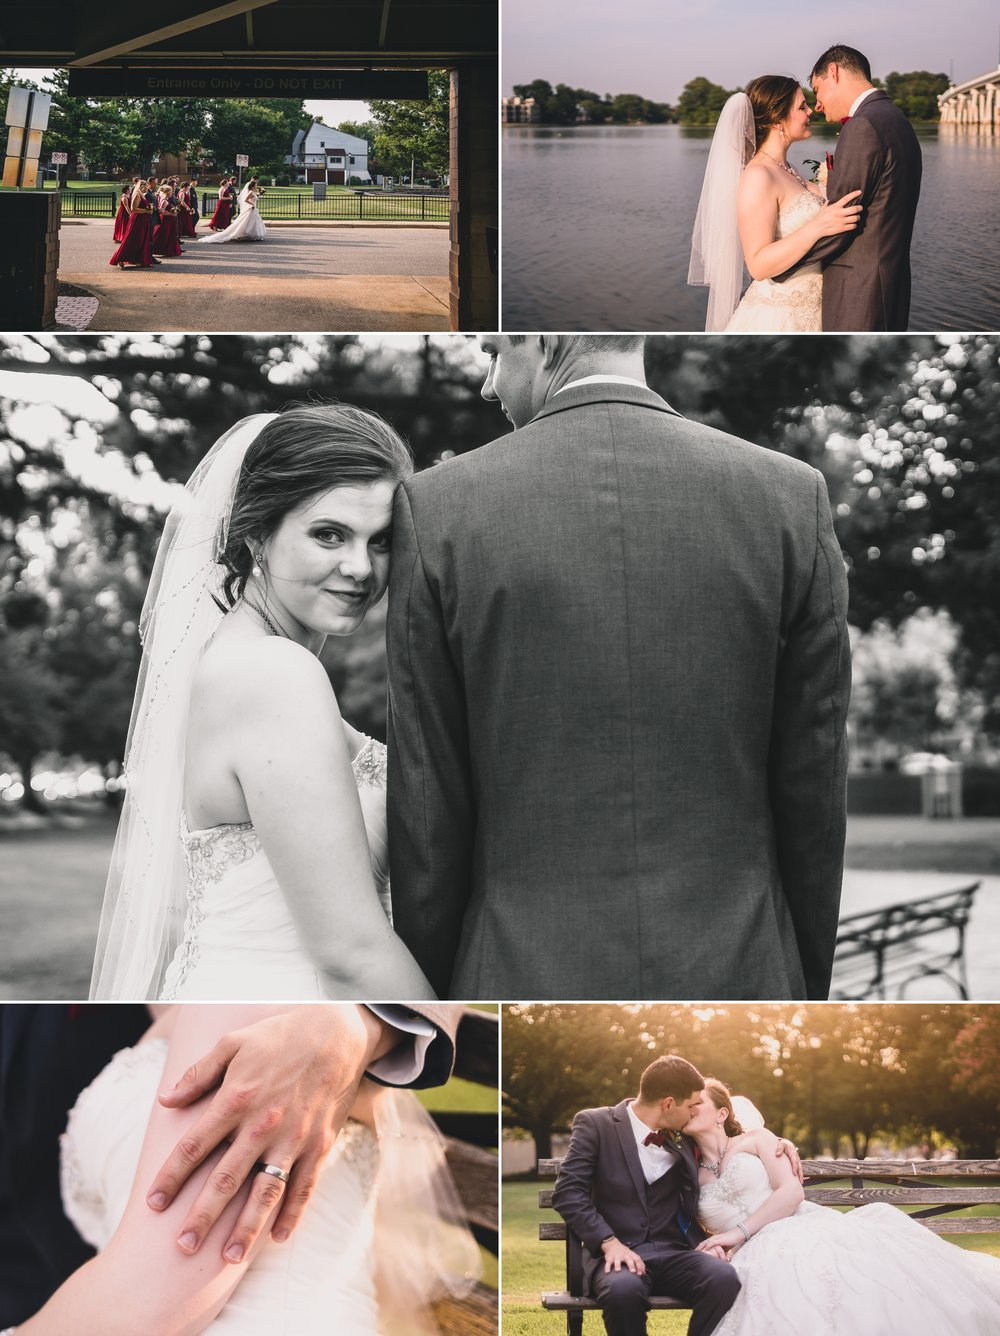 downtown fairytale wedding at the historic post office in hampton virginia by jonathan hannah photography